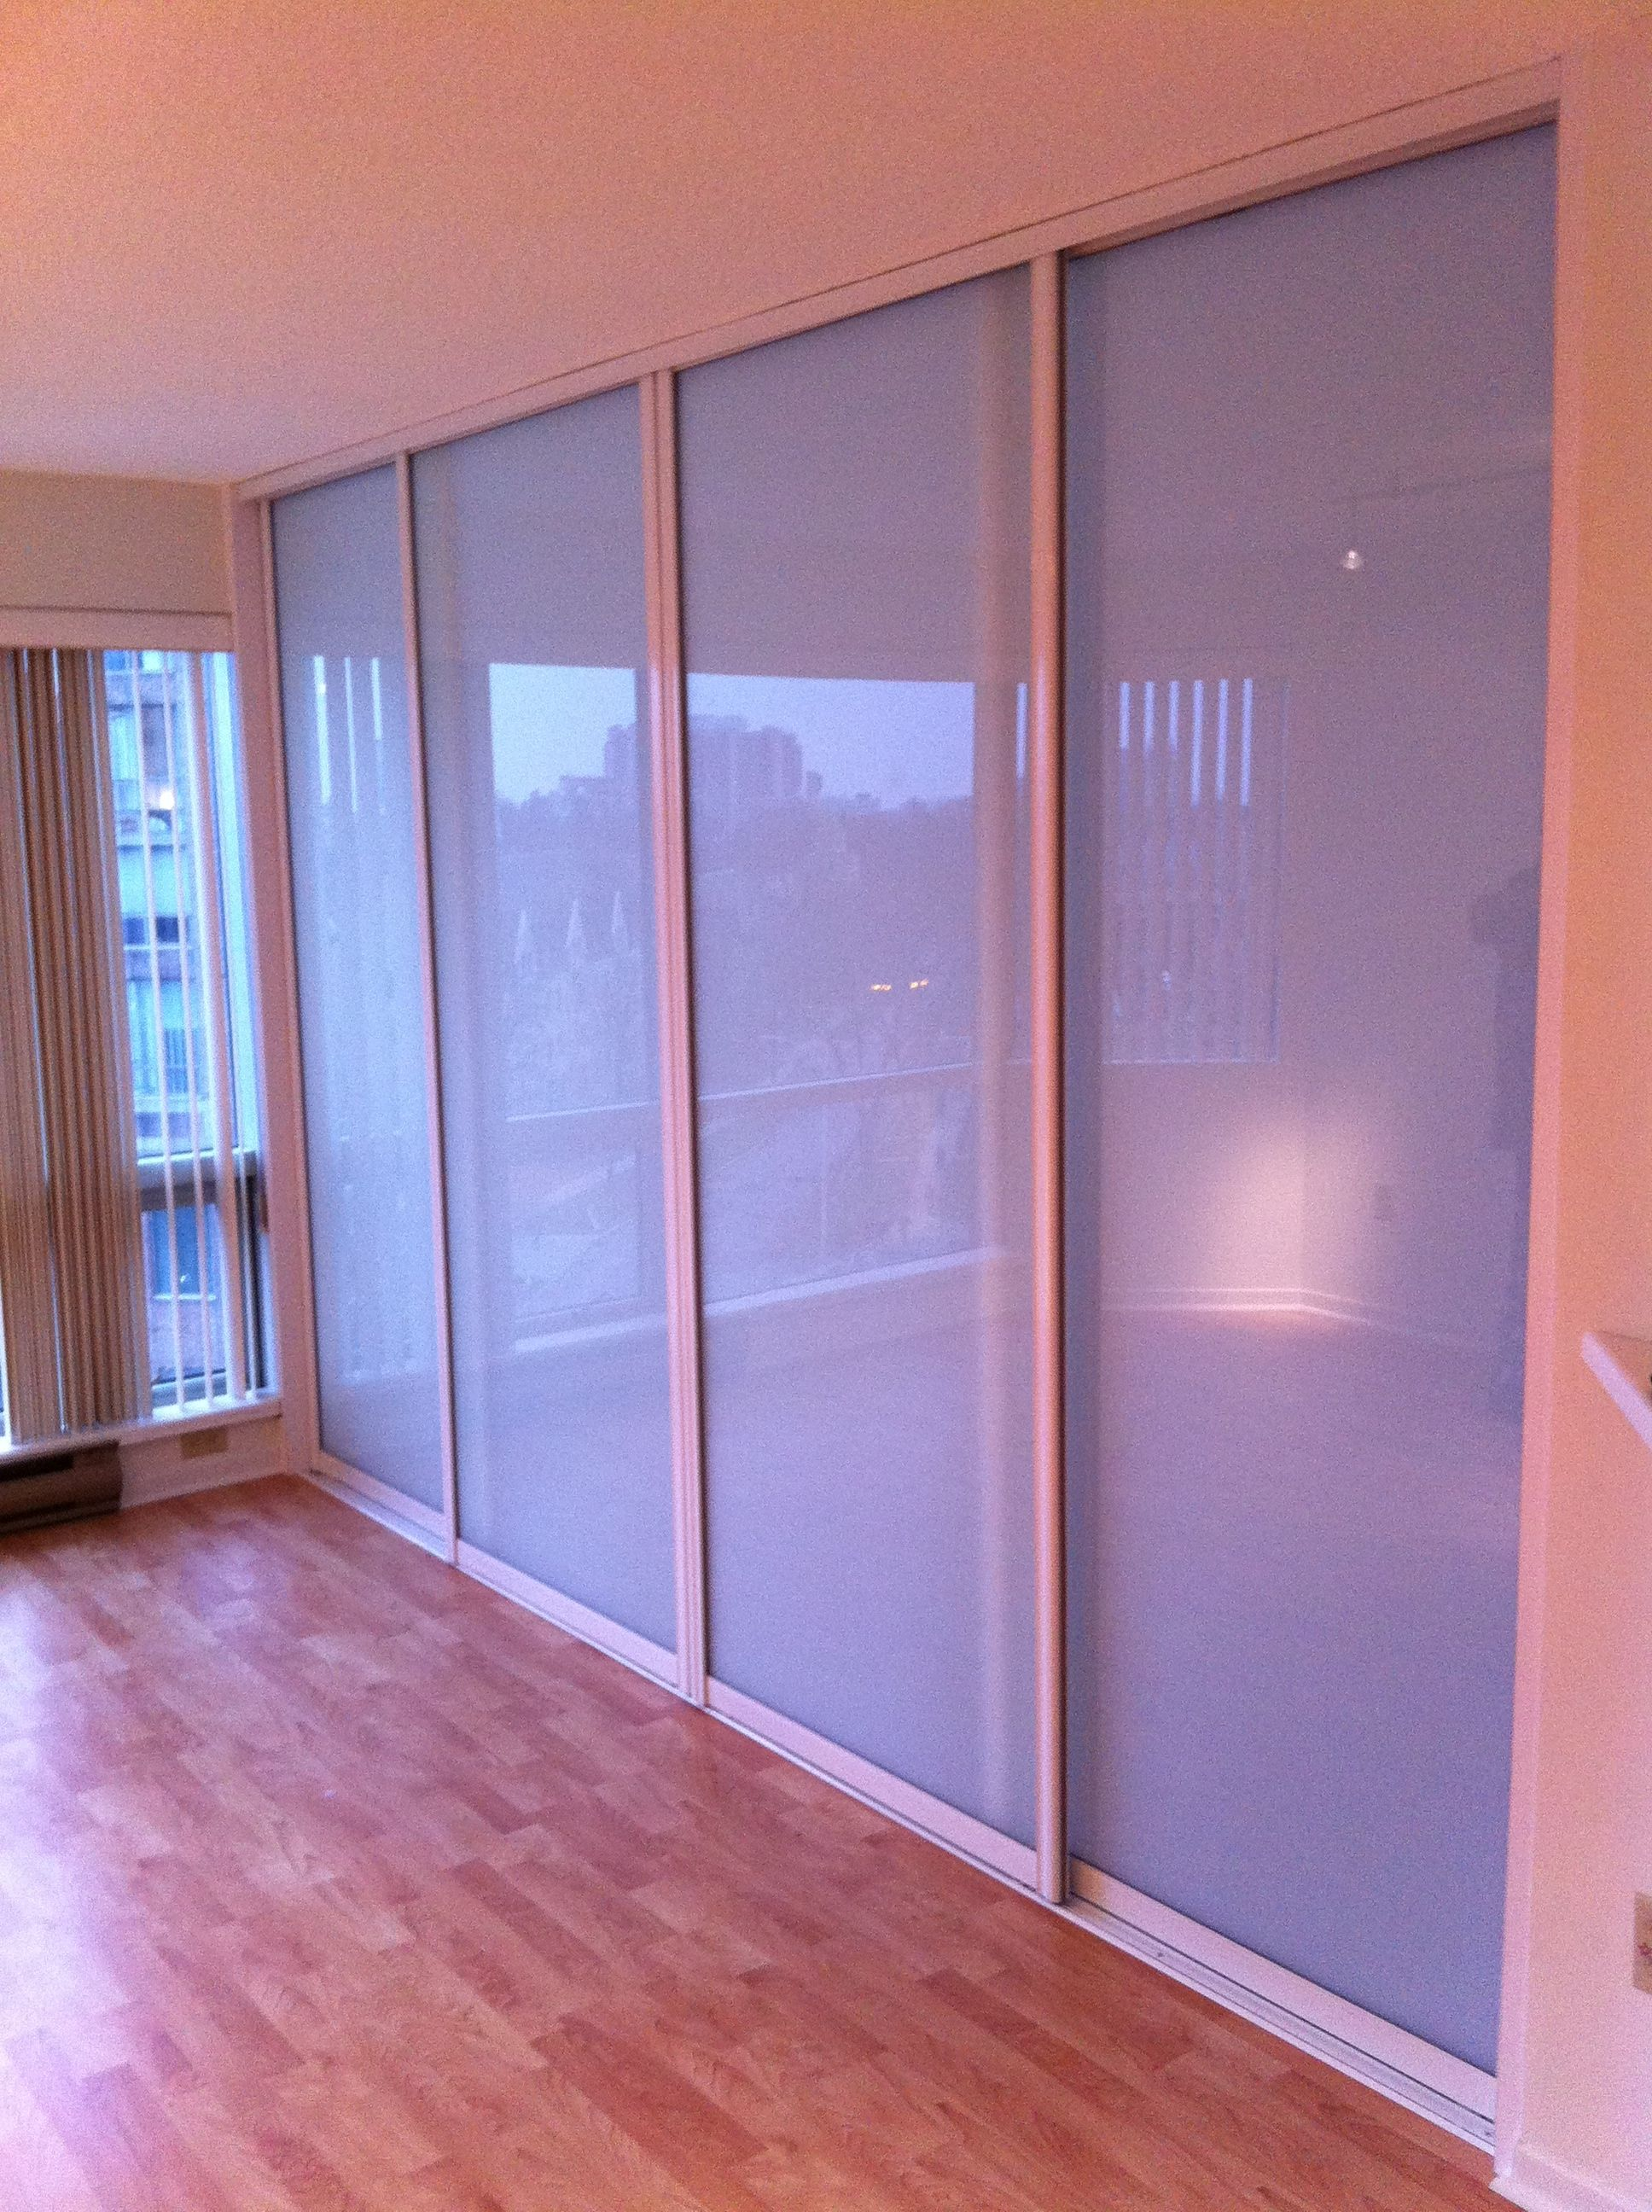 Merveilleux 8 Foot Closet Doors Sliding